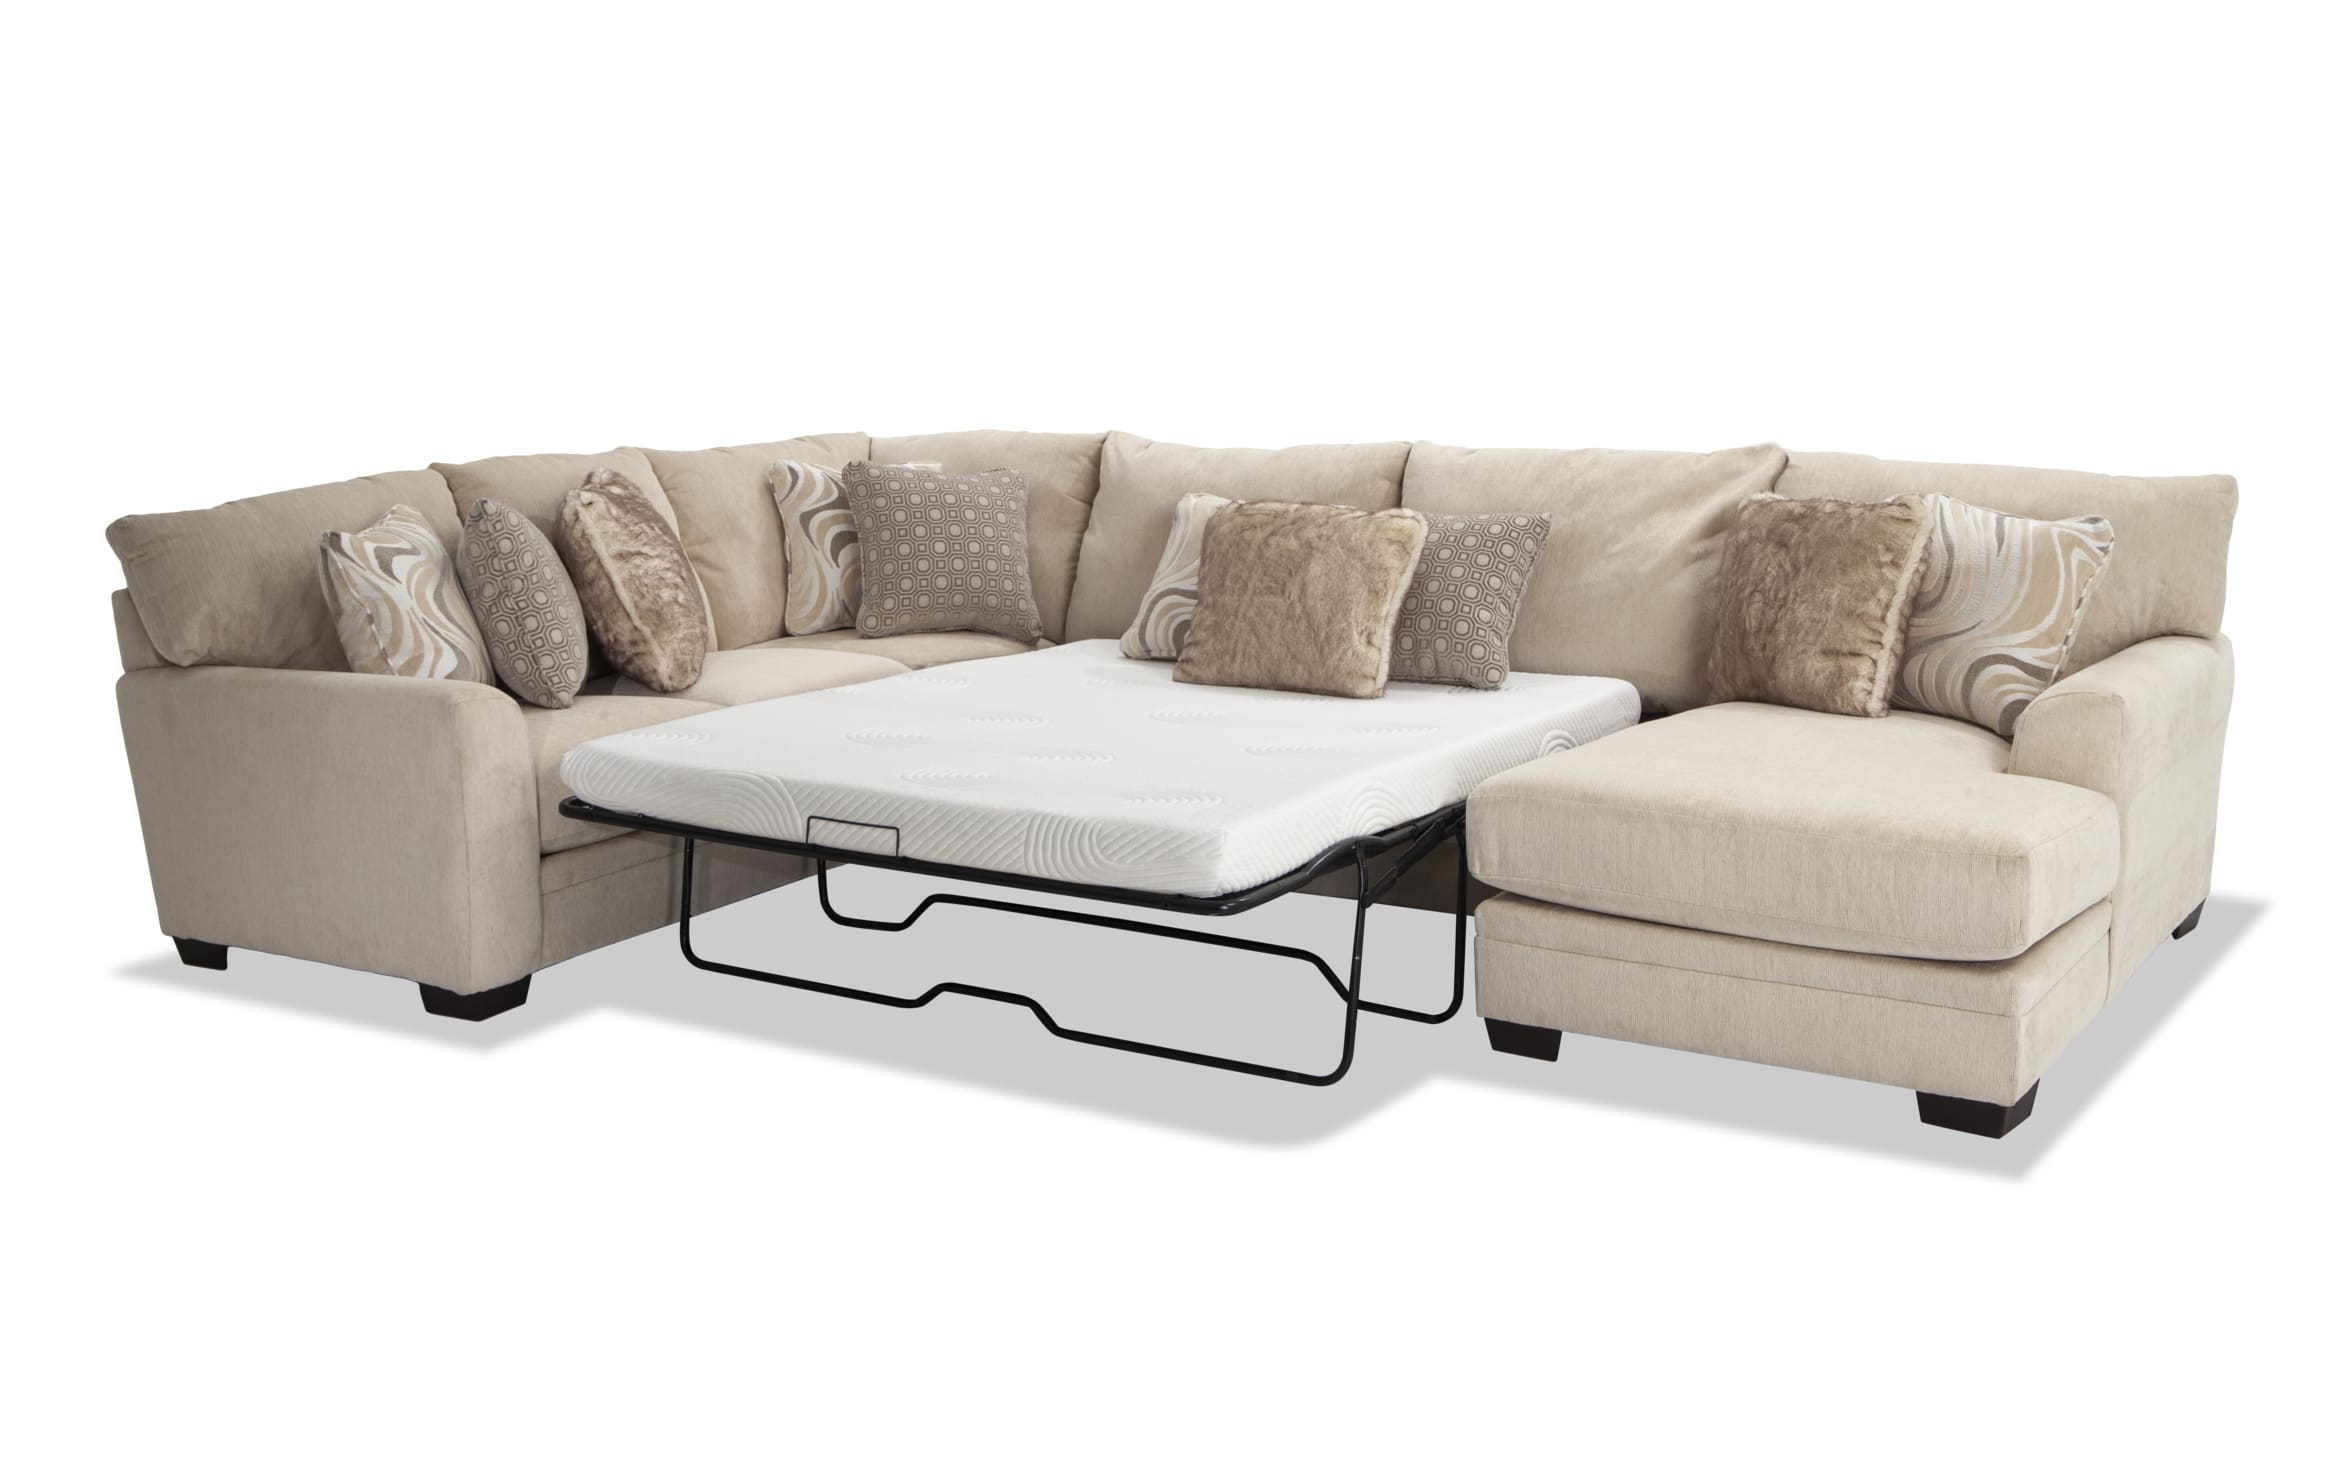 Picture of: Luxe Cream 4 Piece Left Arm Facing Bob O Pedic Gel Queen Sleeper Sectional With Chaise Bobs Com